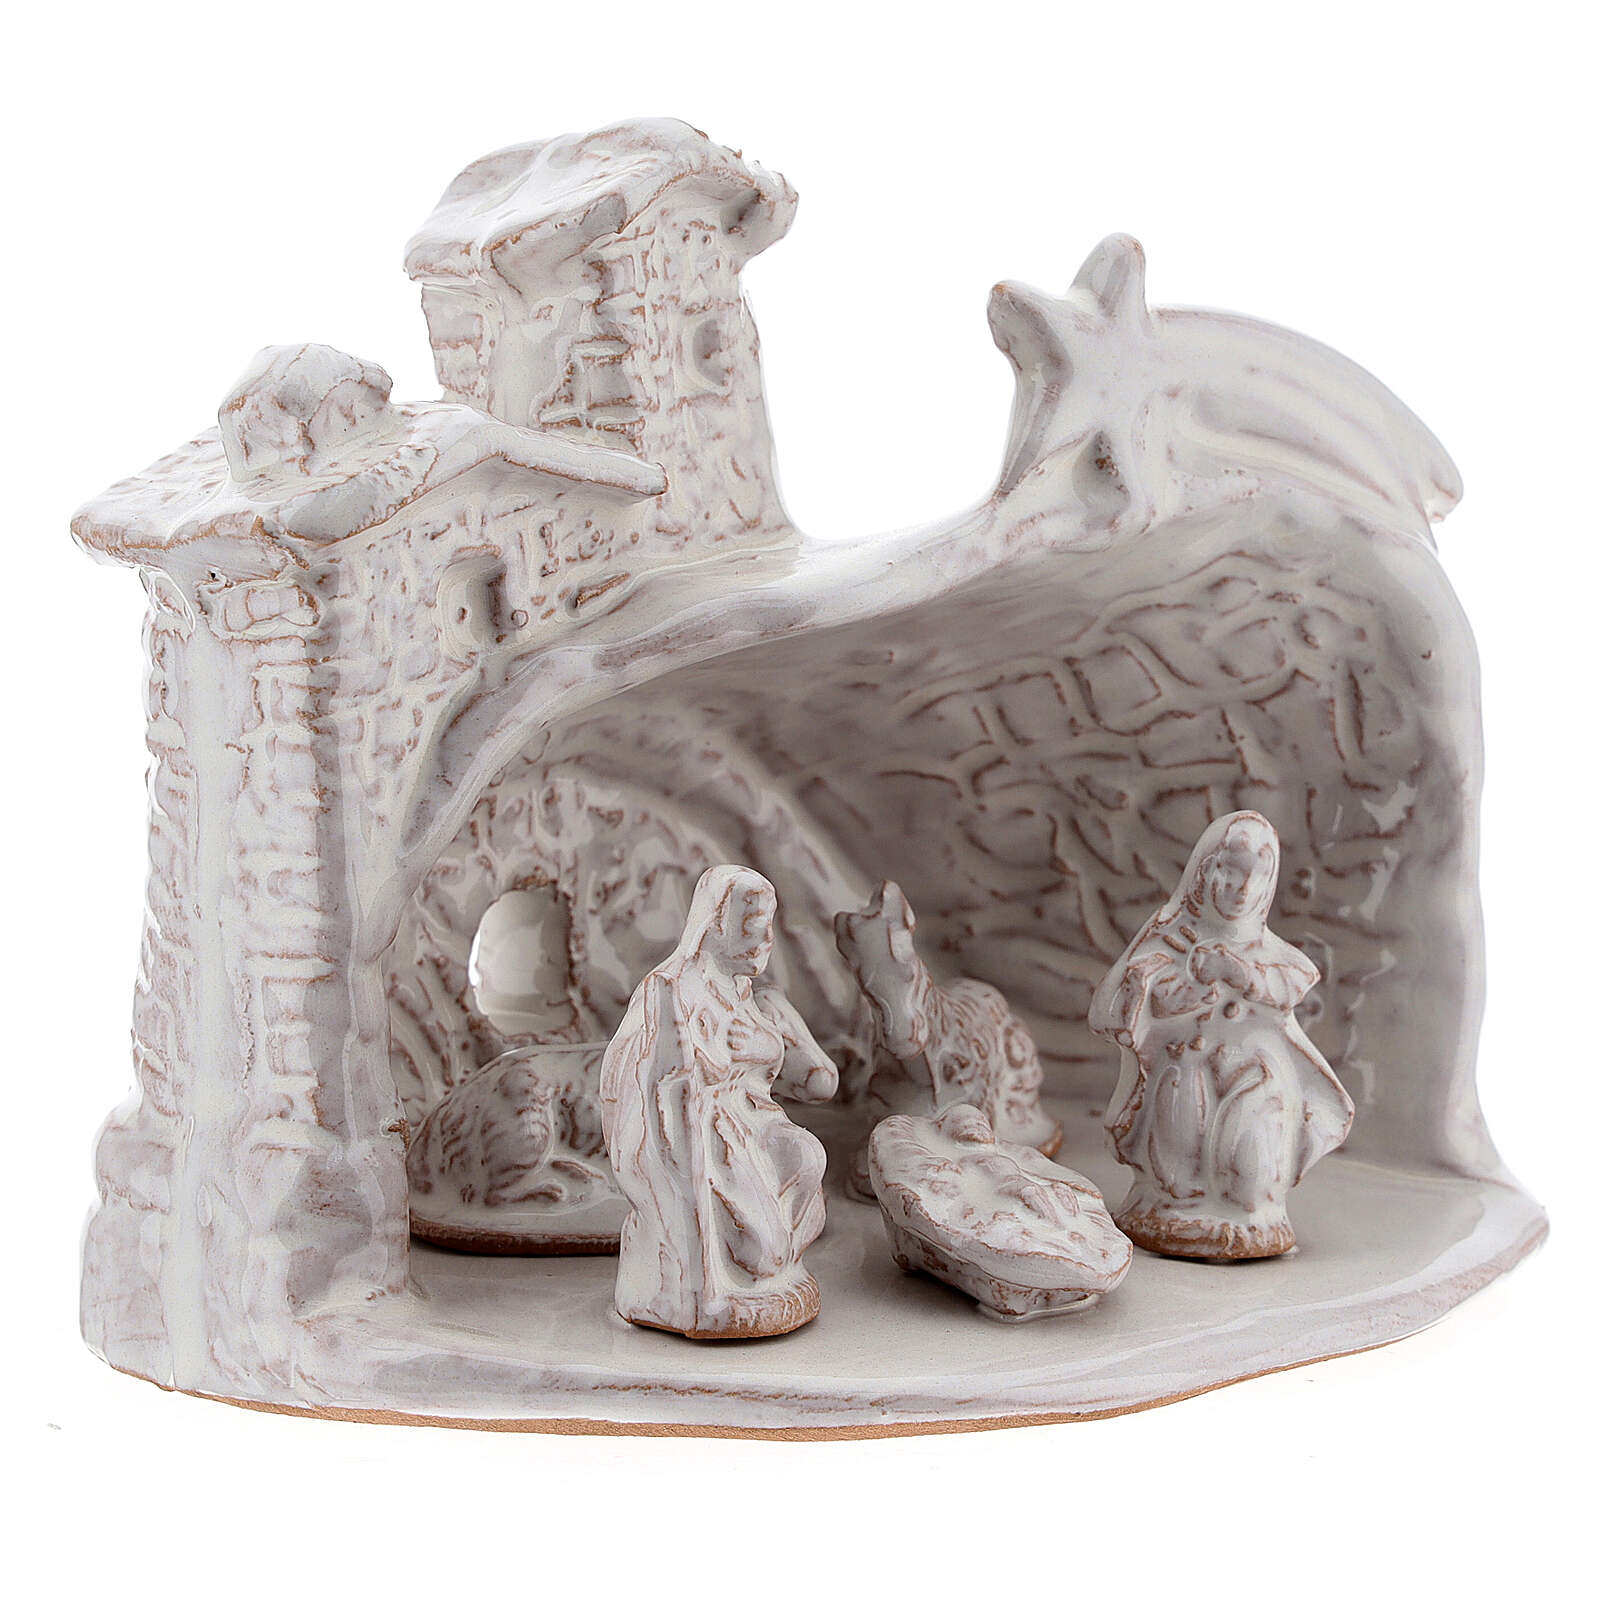 Miniature nativity stable white terracotta brick effect Deruta 10 cm 4